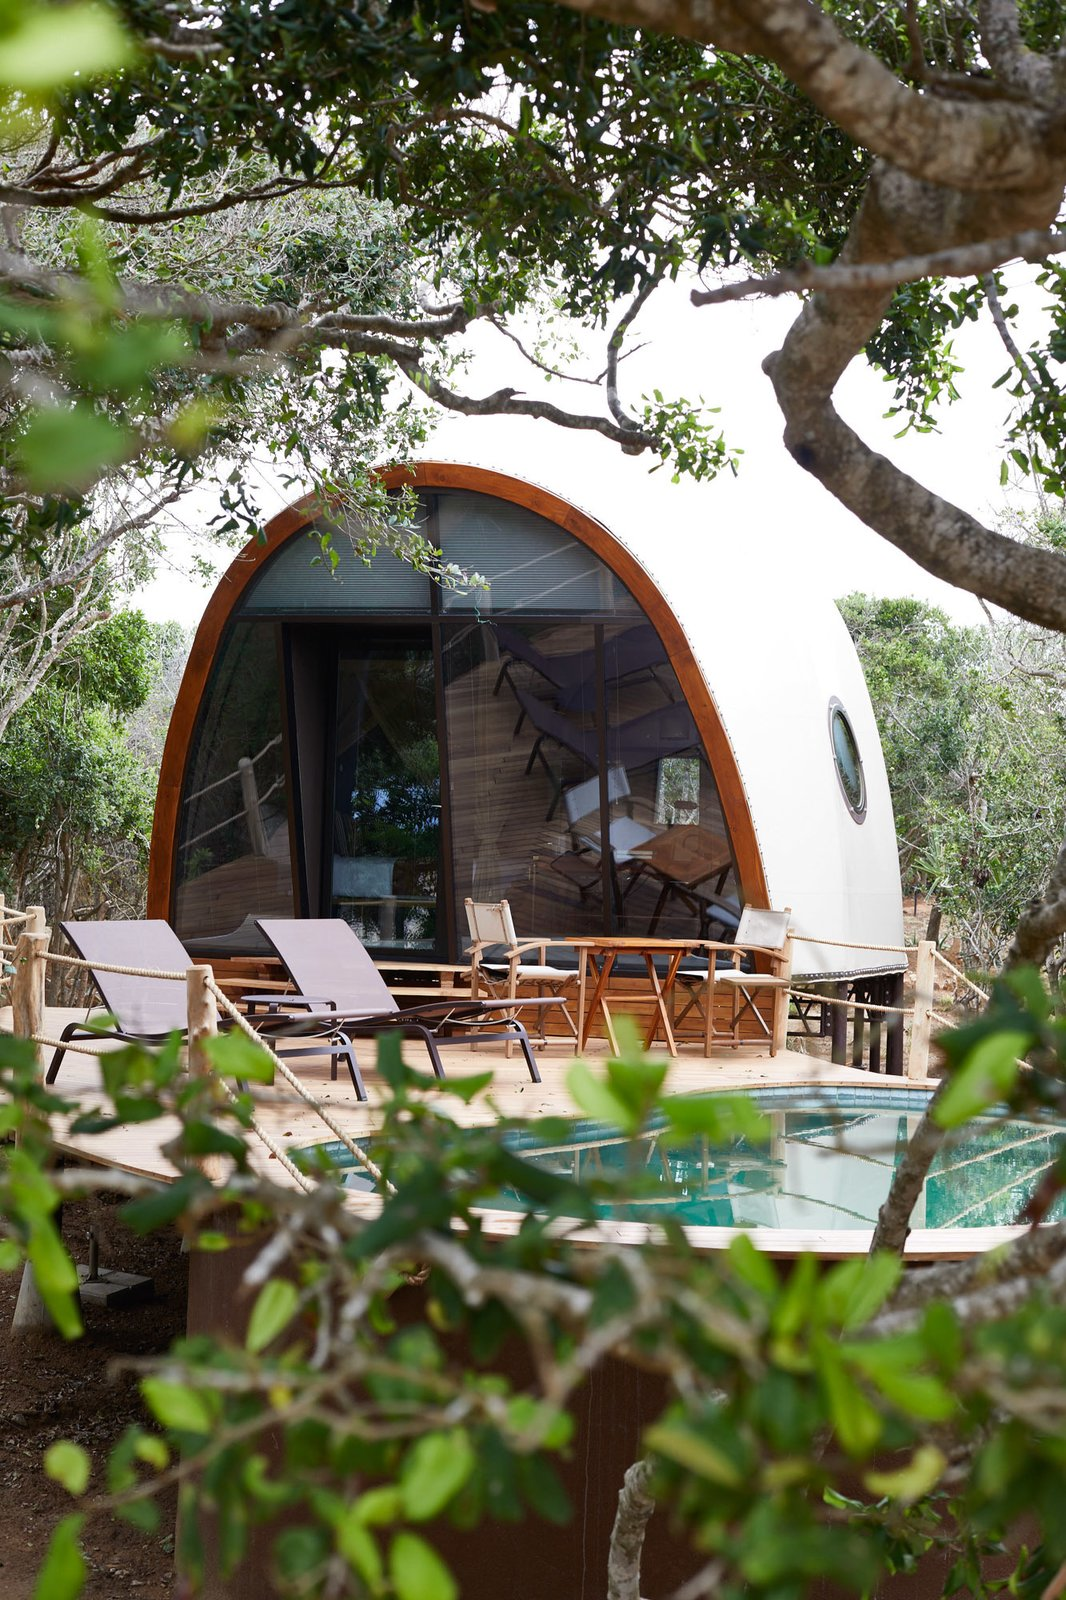 """The resort is made up of 28 air-conditioned and tented """"cocoon suites."""" The light-colored domed structures boast soaring vaulted ceilings and offer panoramic jungle views from their double-height glass facades."""